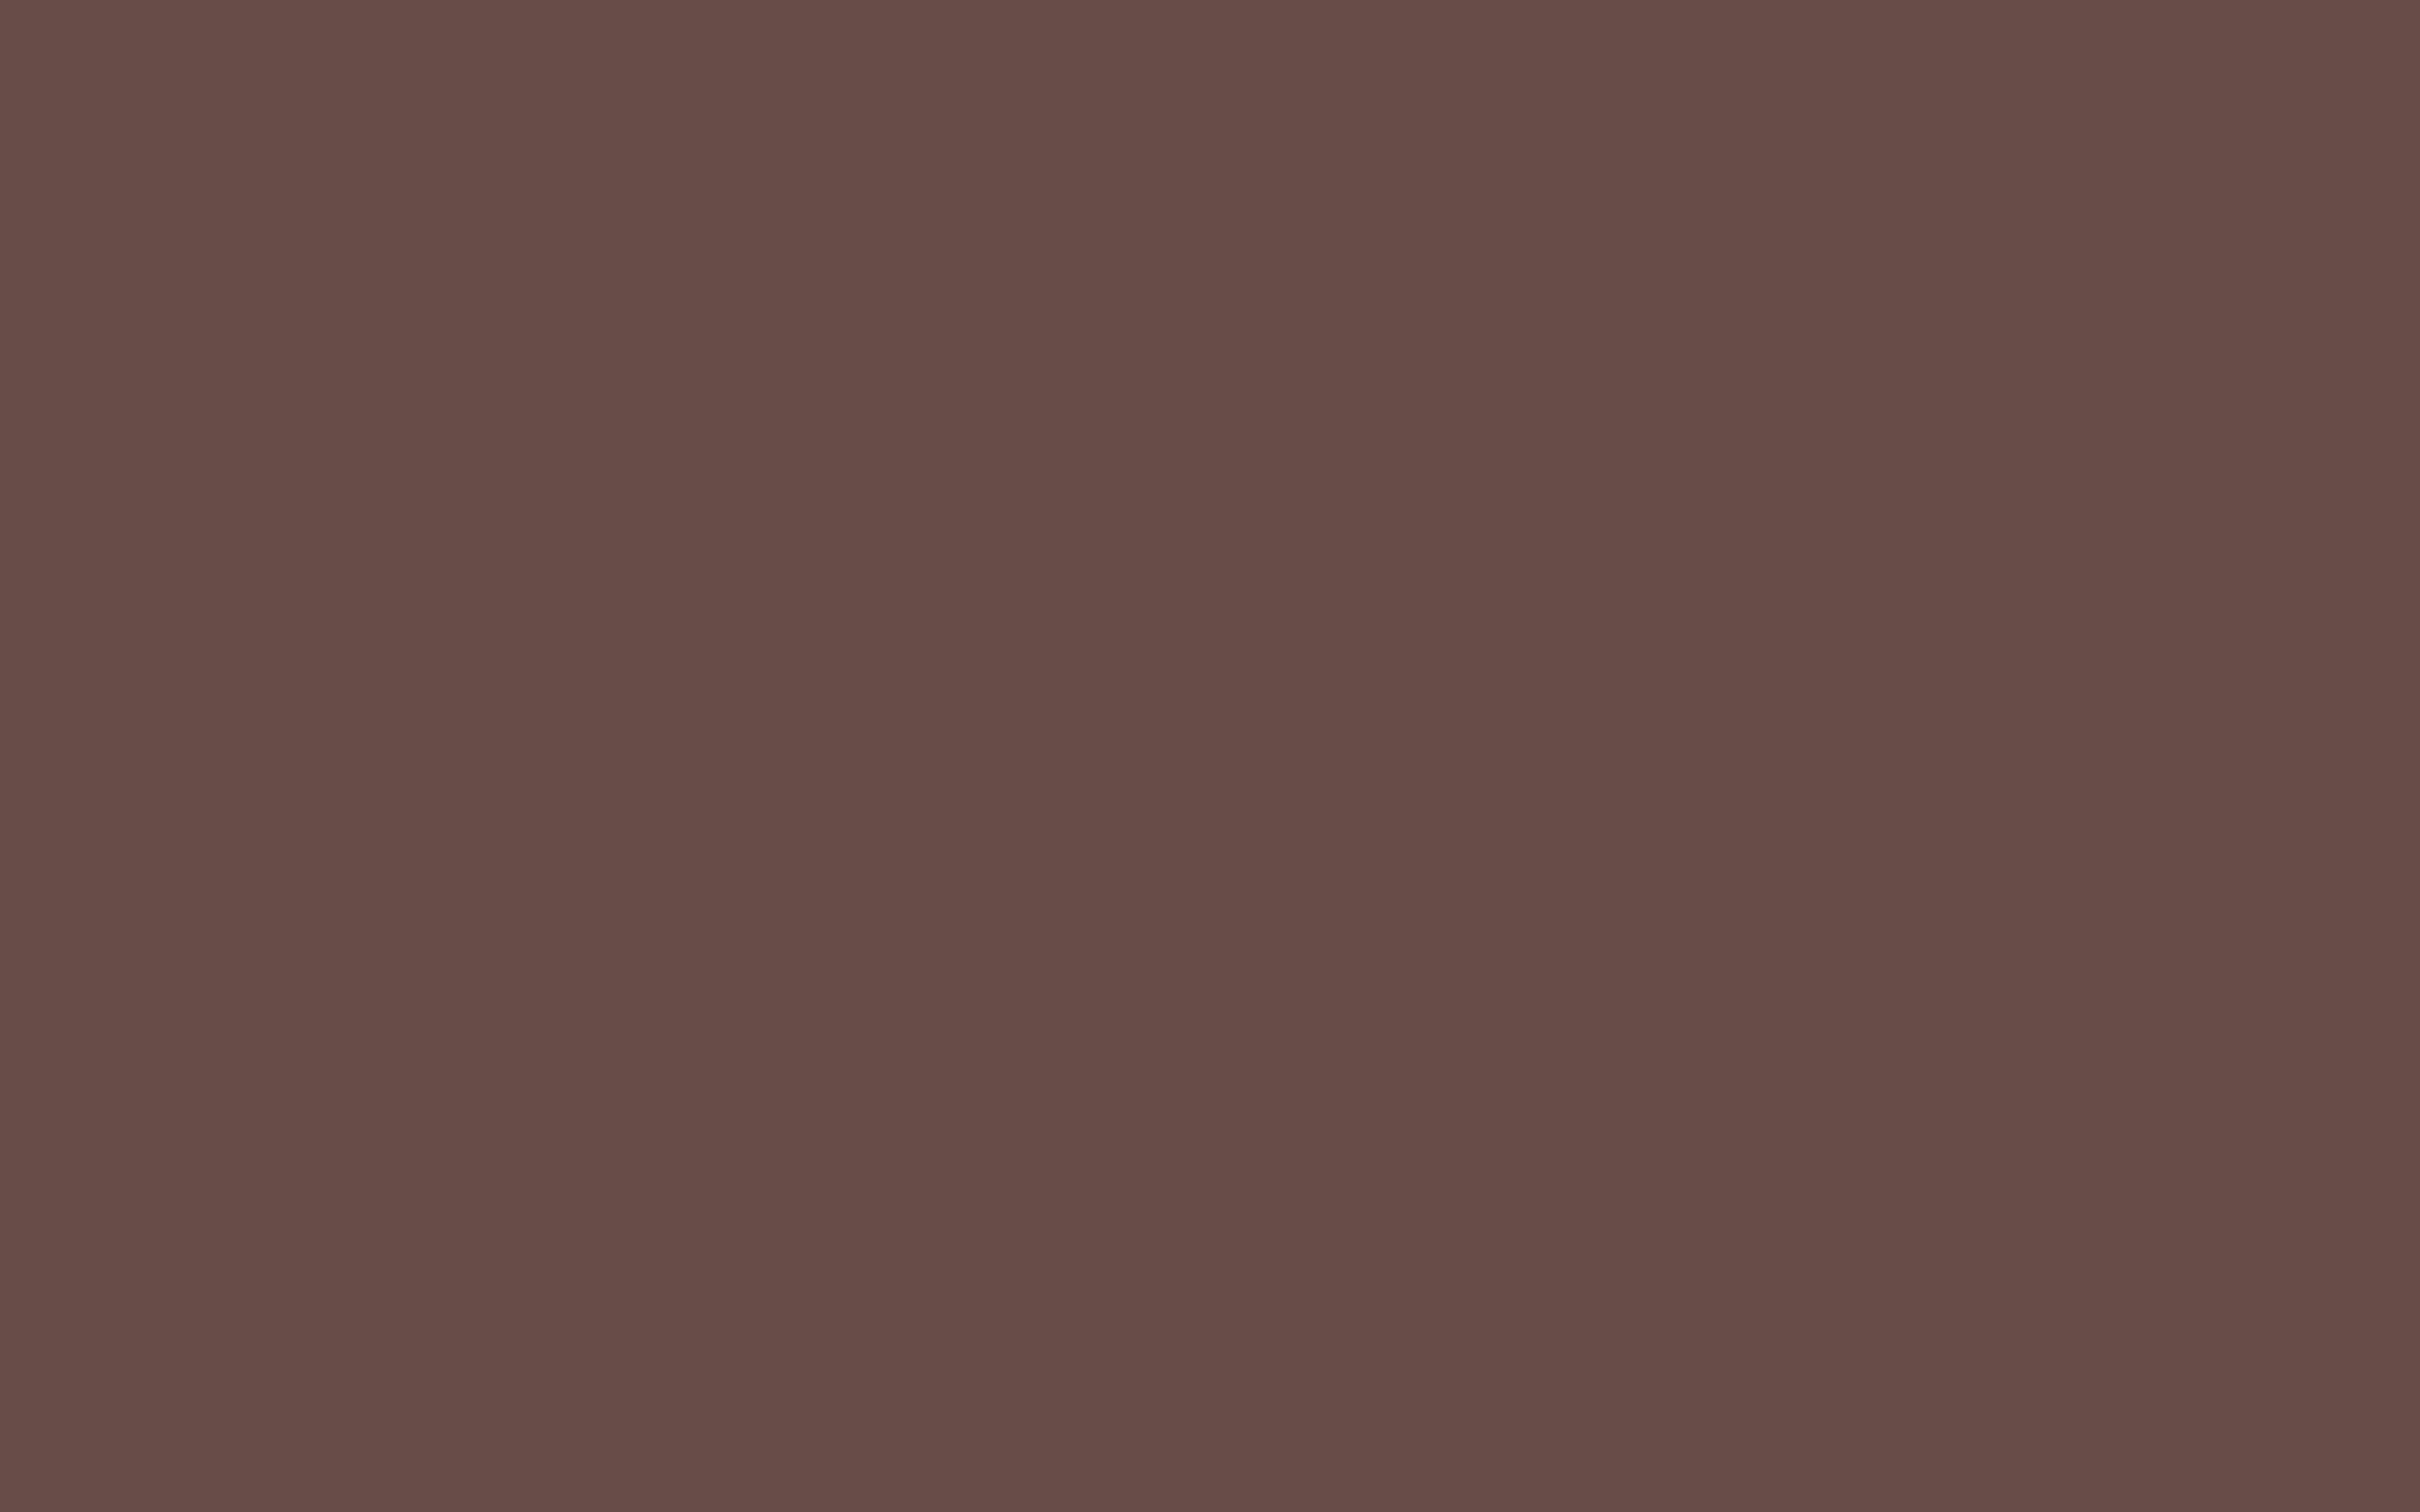 2560x1600 Medium Taupe Solid Color Background